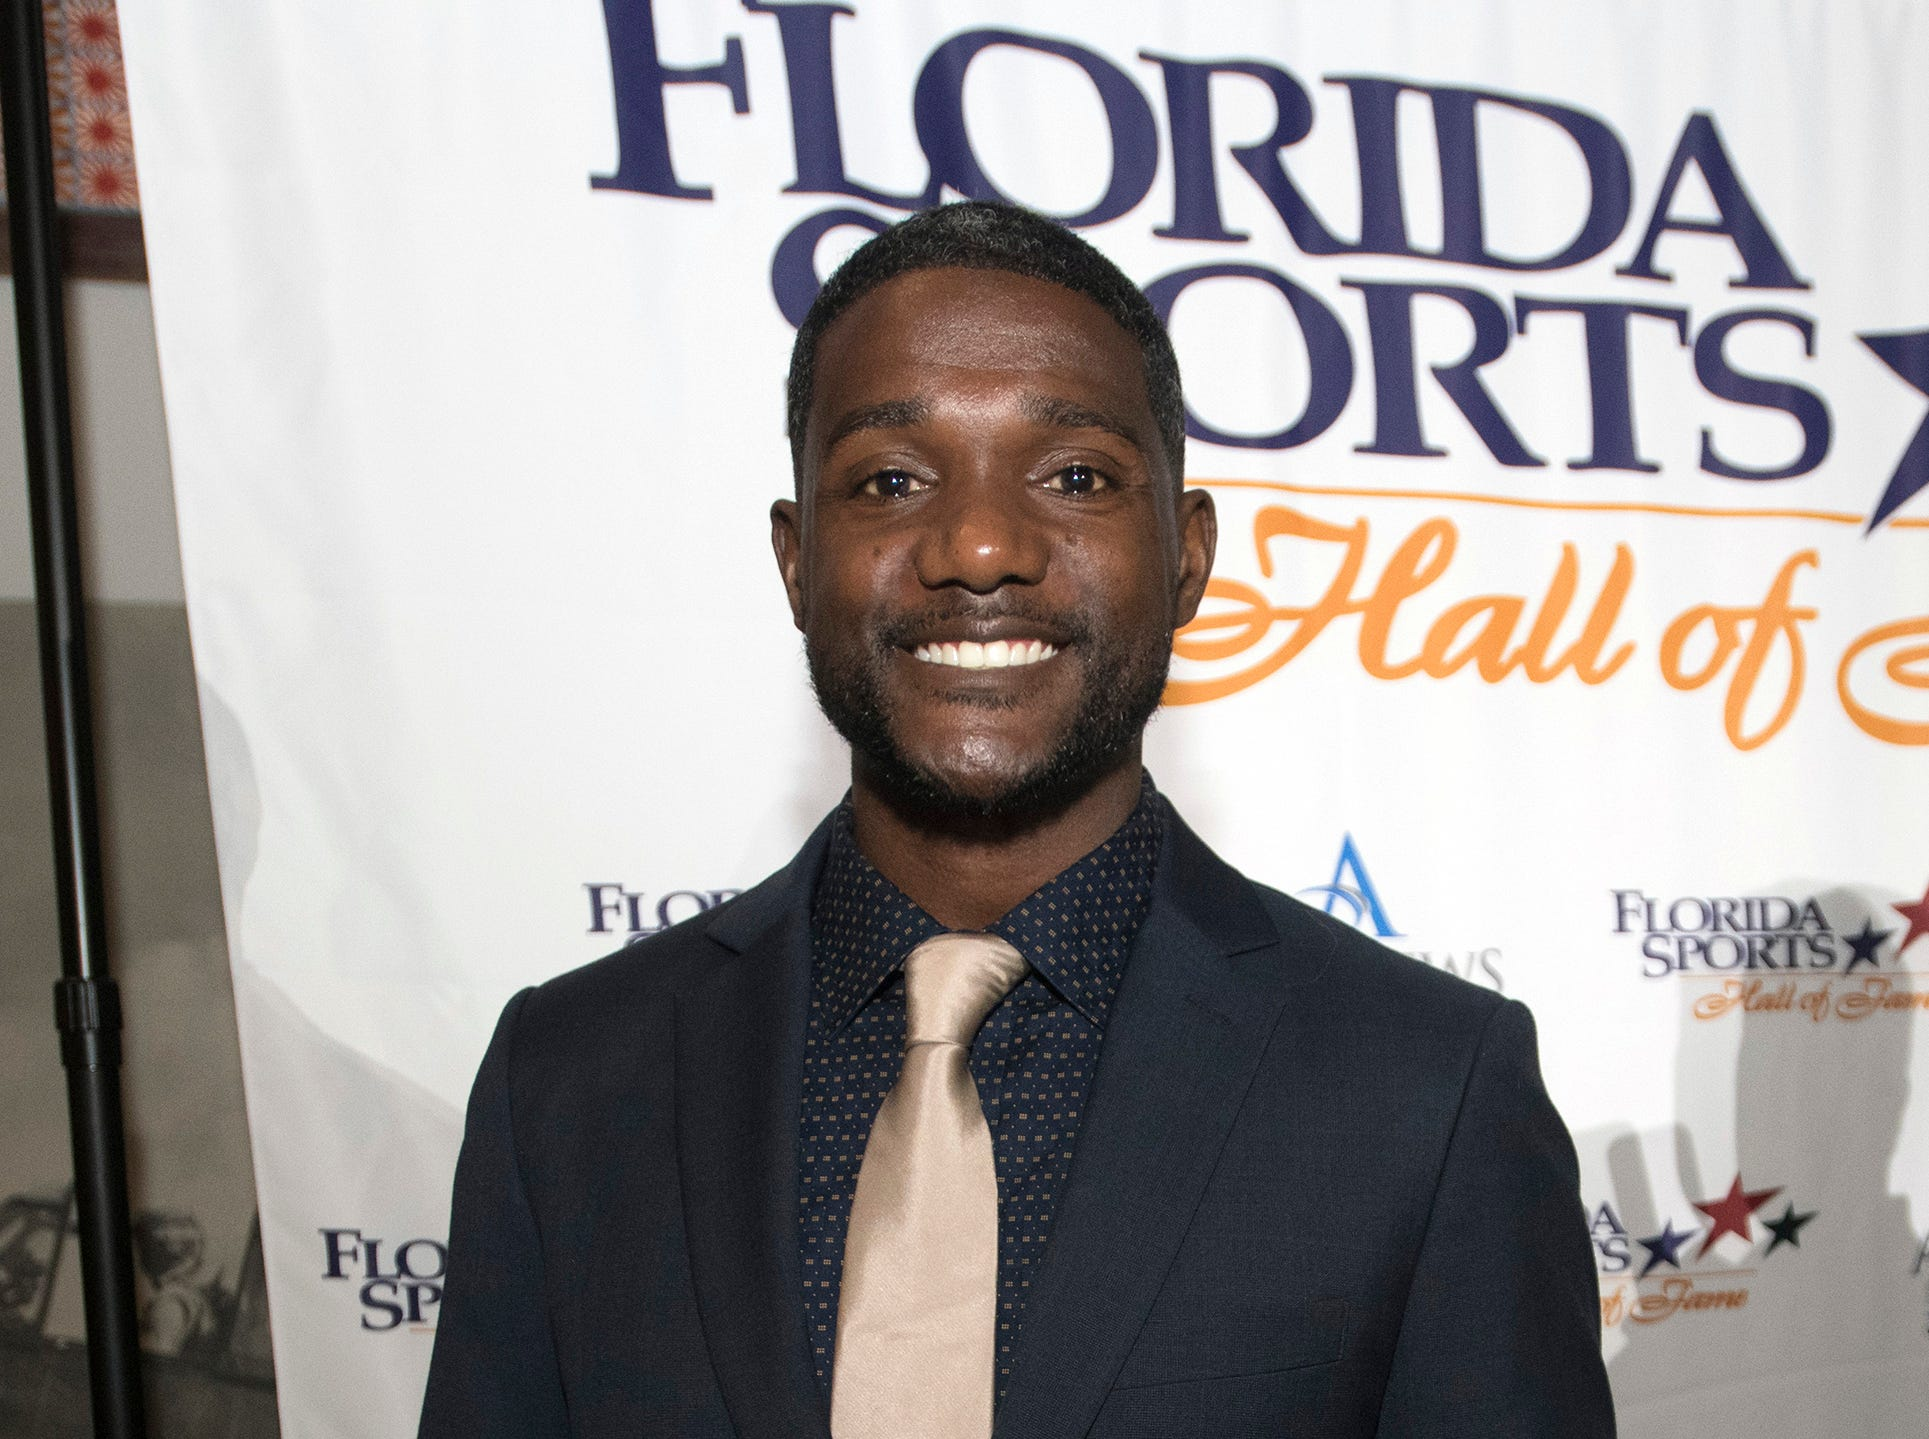 Pensacola own, Justin Gatlin, poses for photographs before the start of Wednesday night's 2018 Florida Sports Hall of Fame Enshrinement Ceremony at the National Naval Aviation Museum.